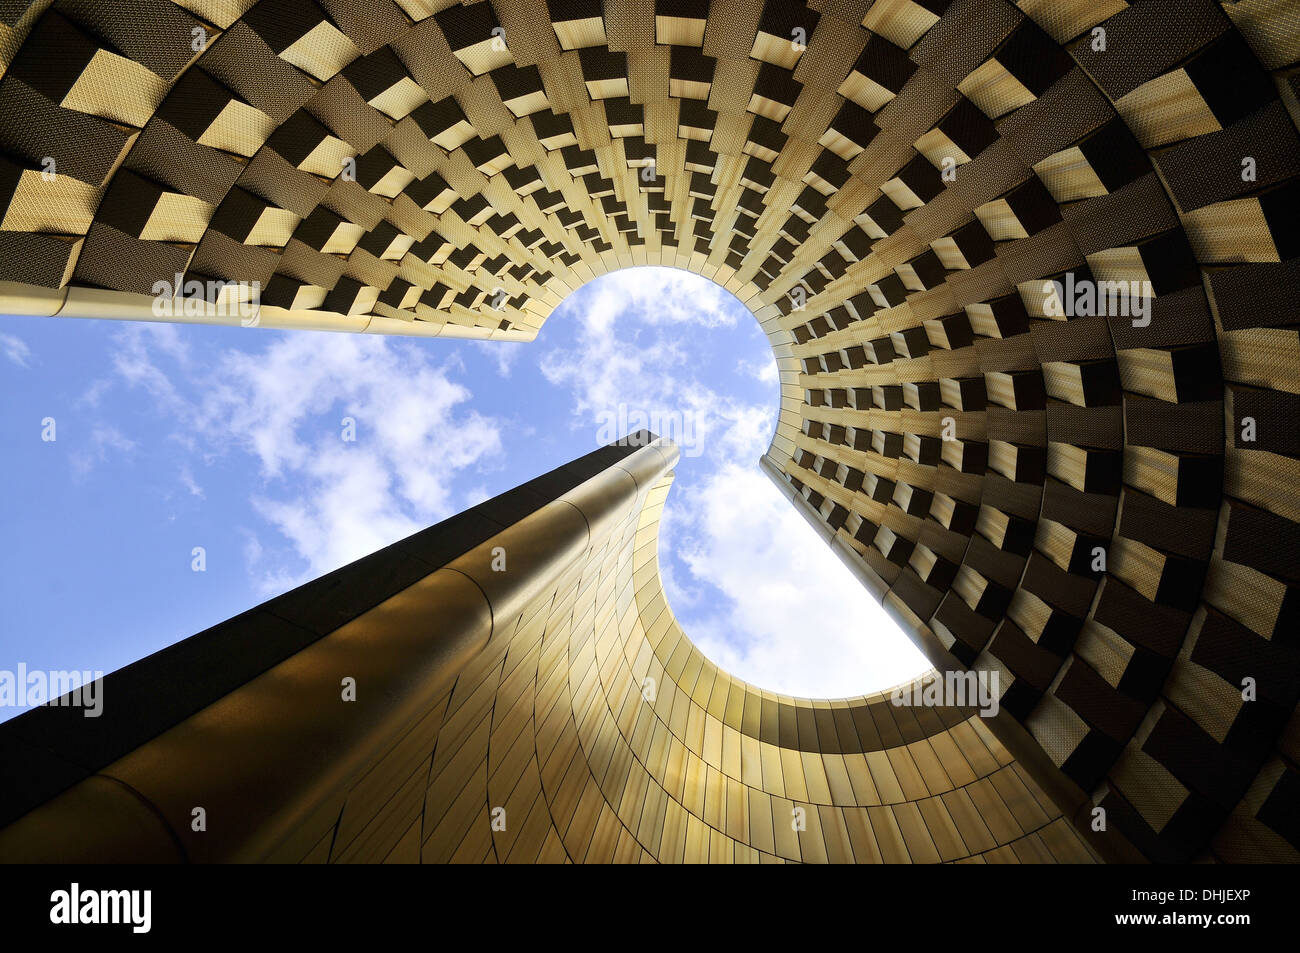 Interior view of the tower, Vulcania Park at Puy de Dome, Auvergne, France, Europe - Stock Image